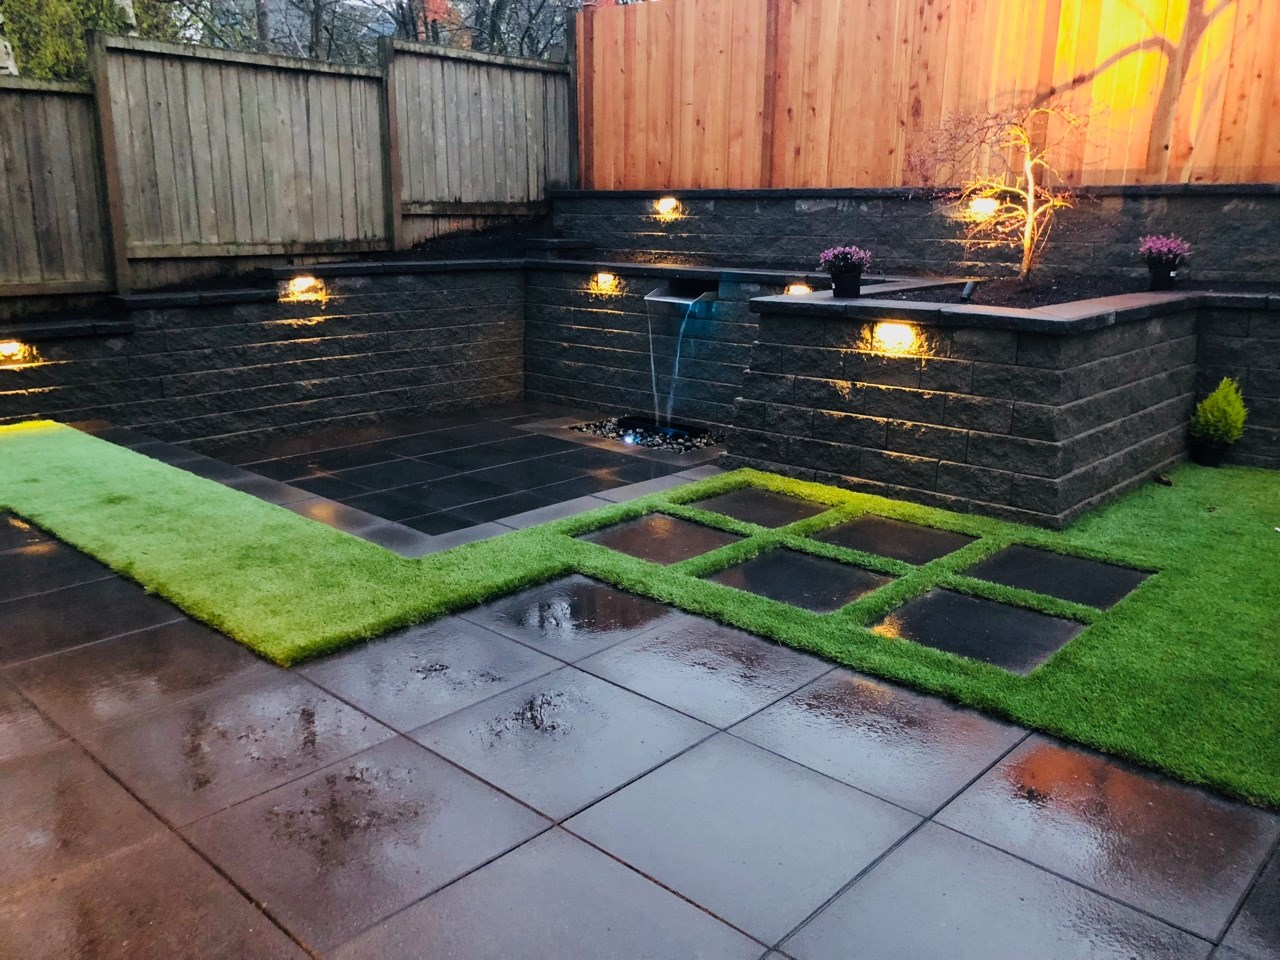 A backyard with retaining walls and a water feature.